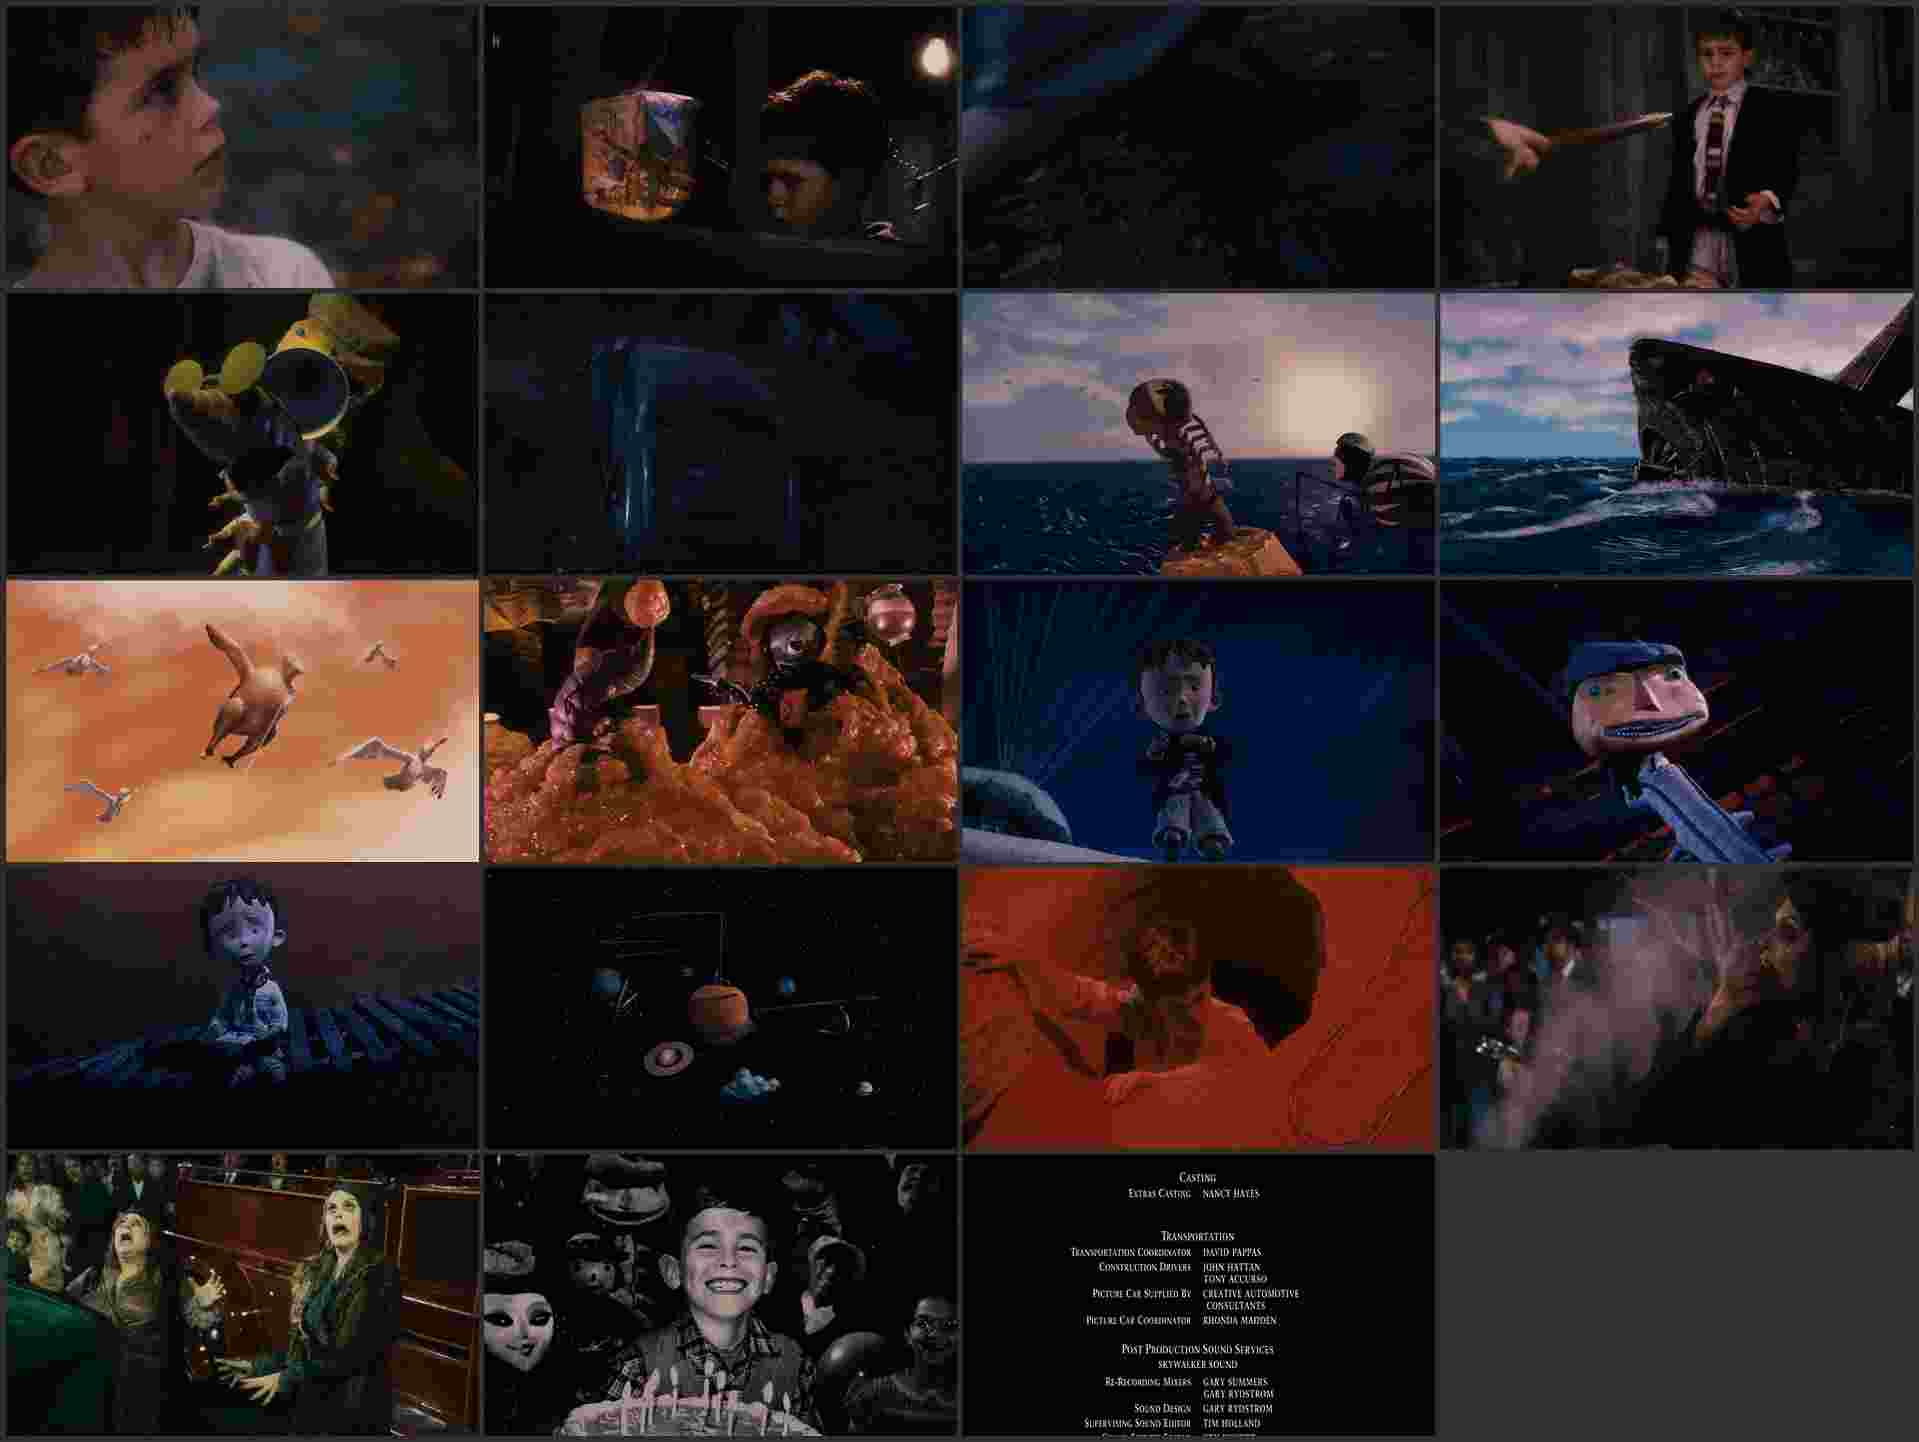 James_And_The_Giant_Peach_1996_1080p__Download.ir.mp4 cover.www.download.ir